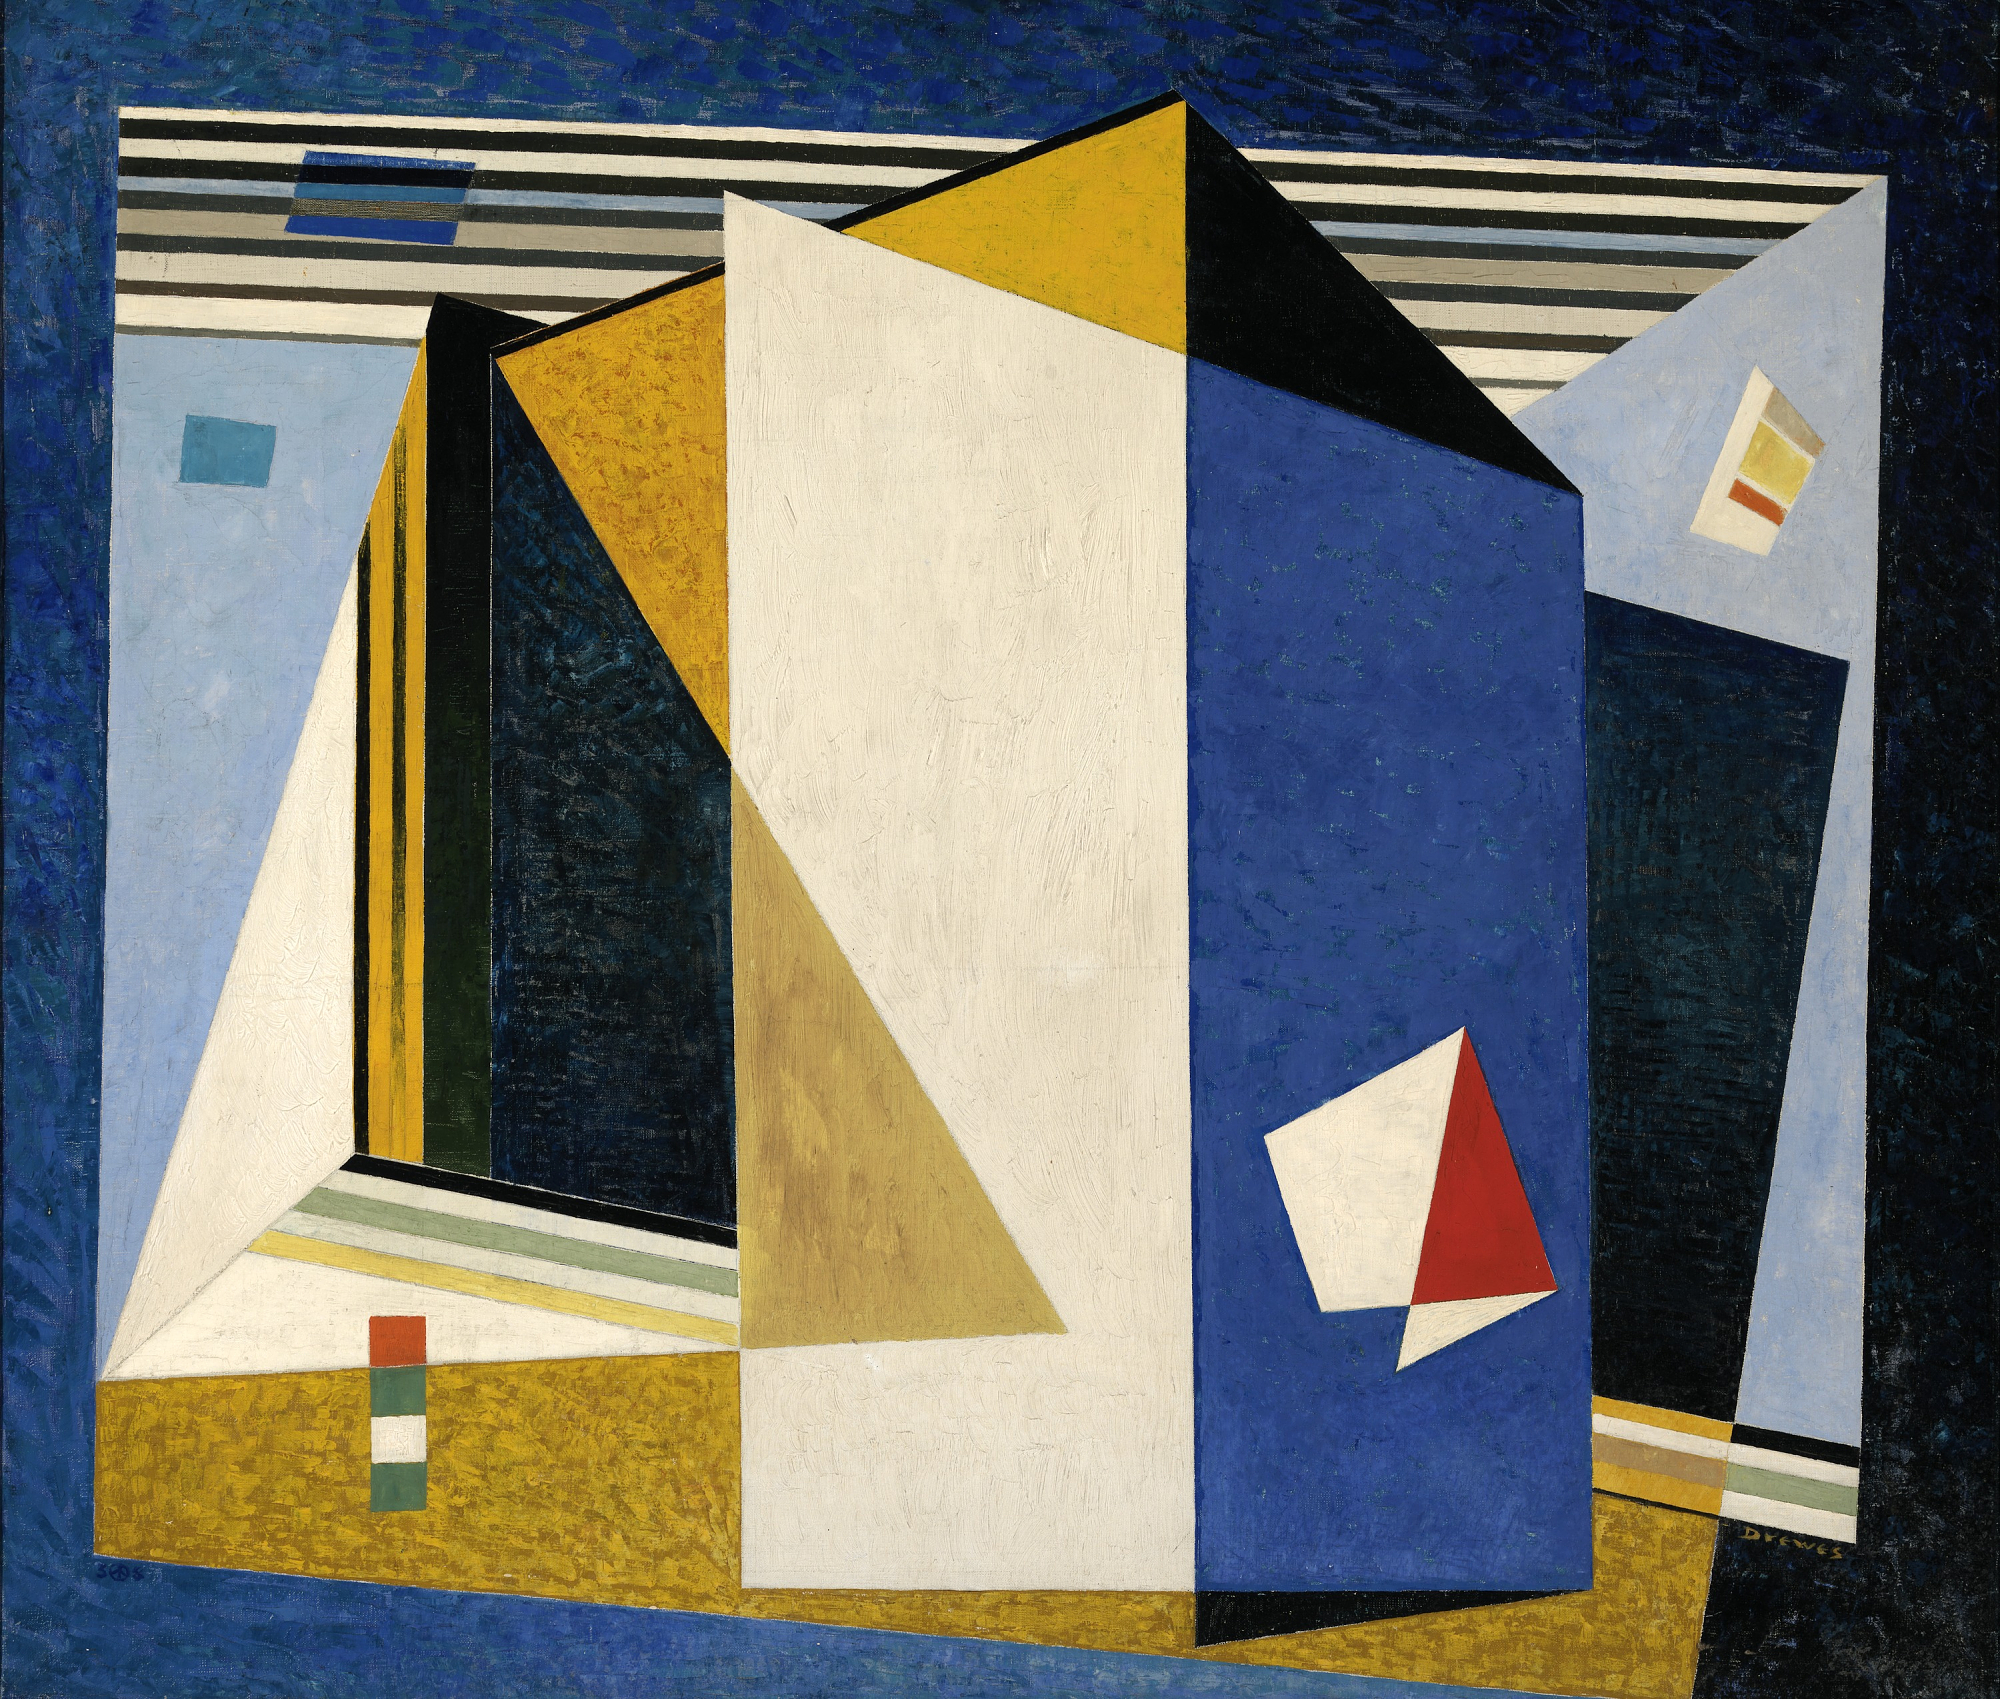 Werner Drewes, In the Blue Space, 1938, oil on canvas, Smithsonian American Art Museum, Gift of the artist, 1975.115